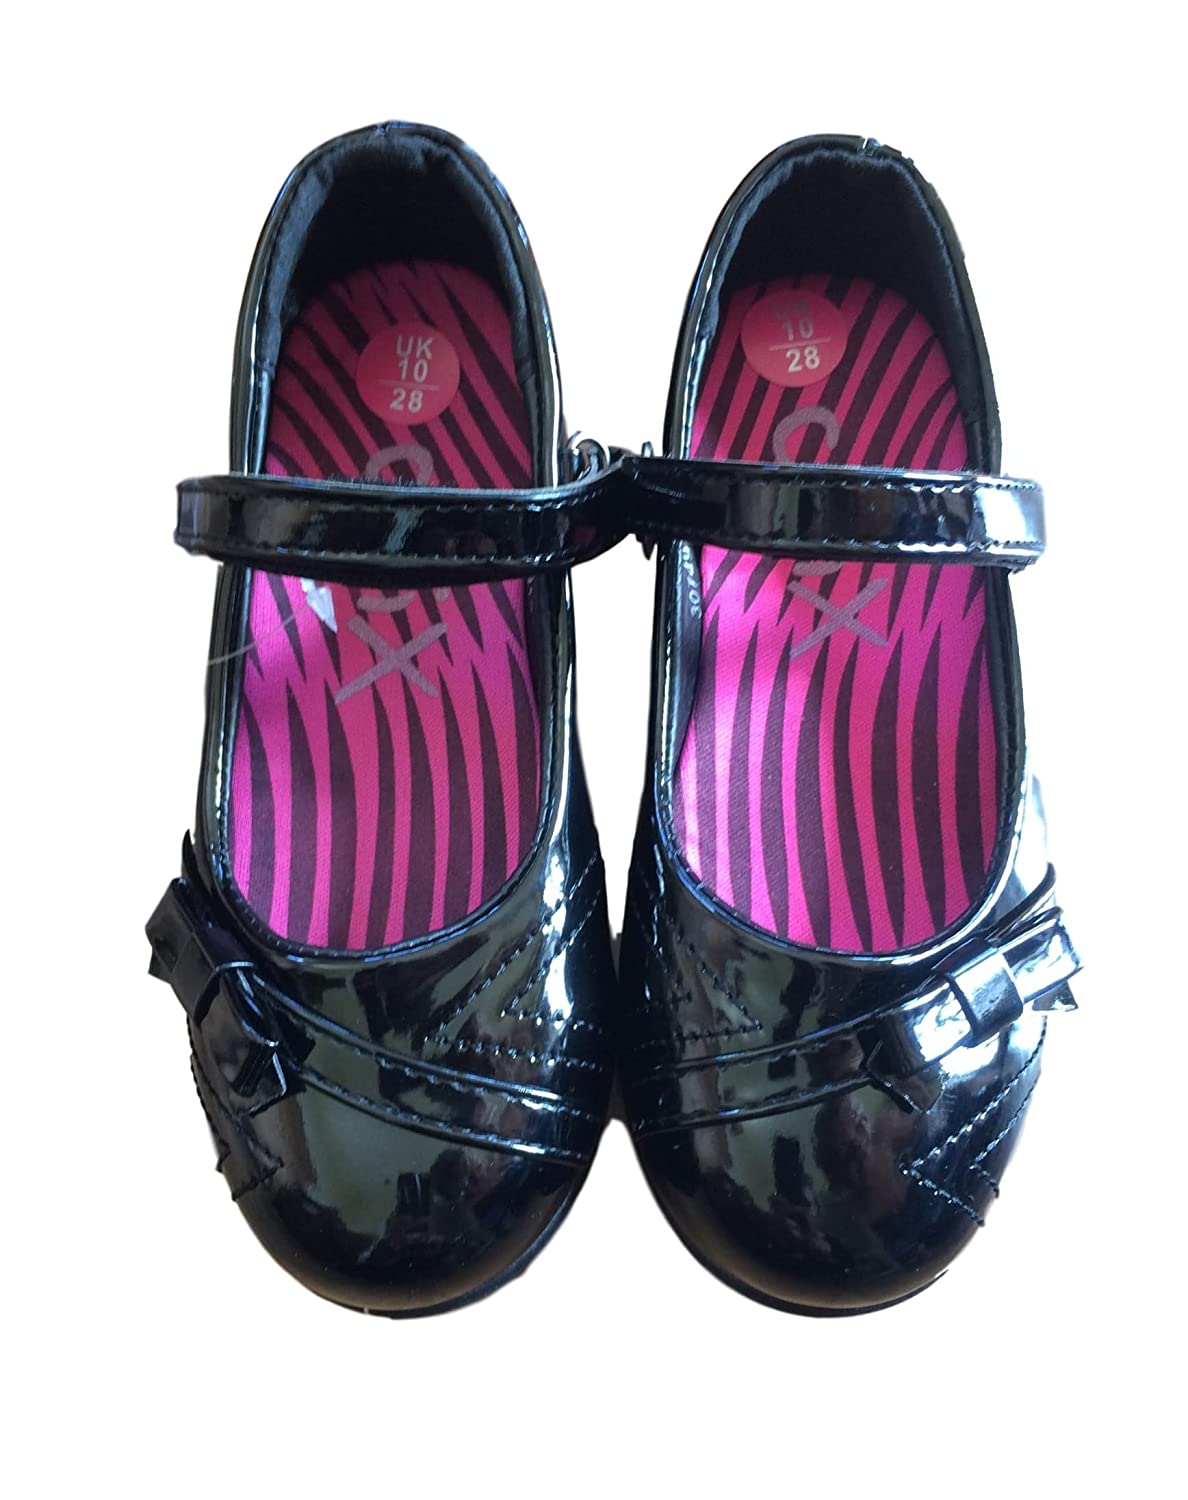 Girls Chix Bow Patent Dolly Shoes (C13/32 EUR): Amazon.co.uk: Shoes & Bags